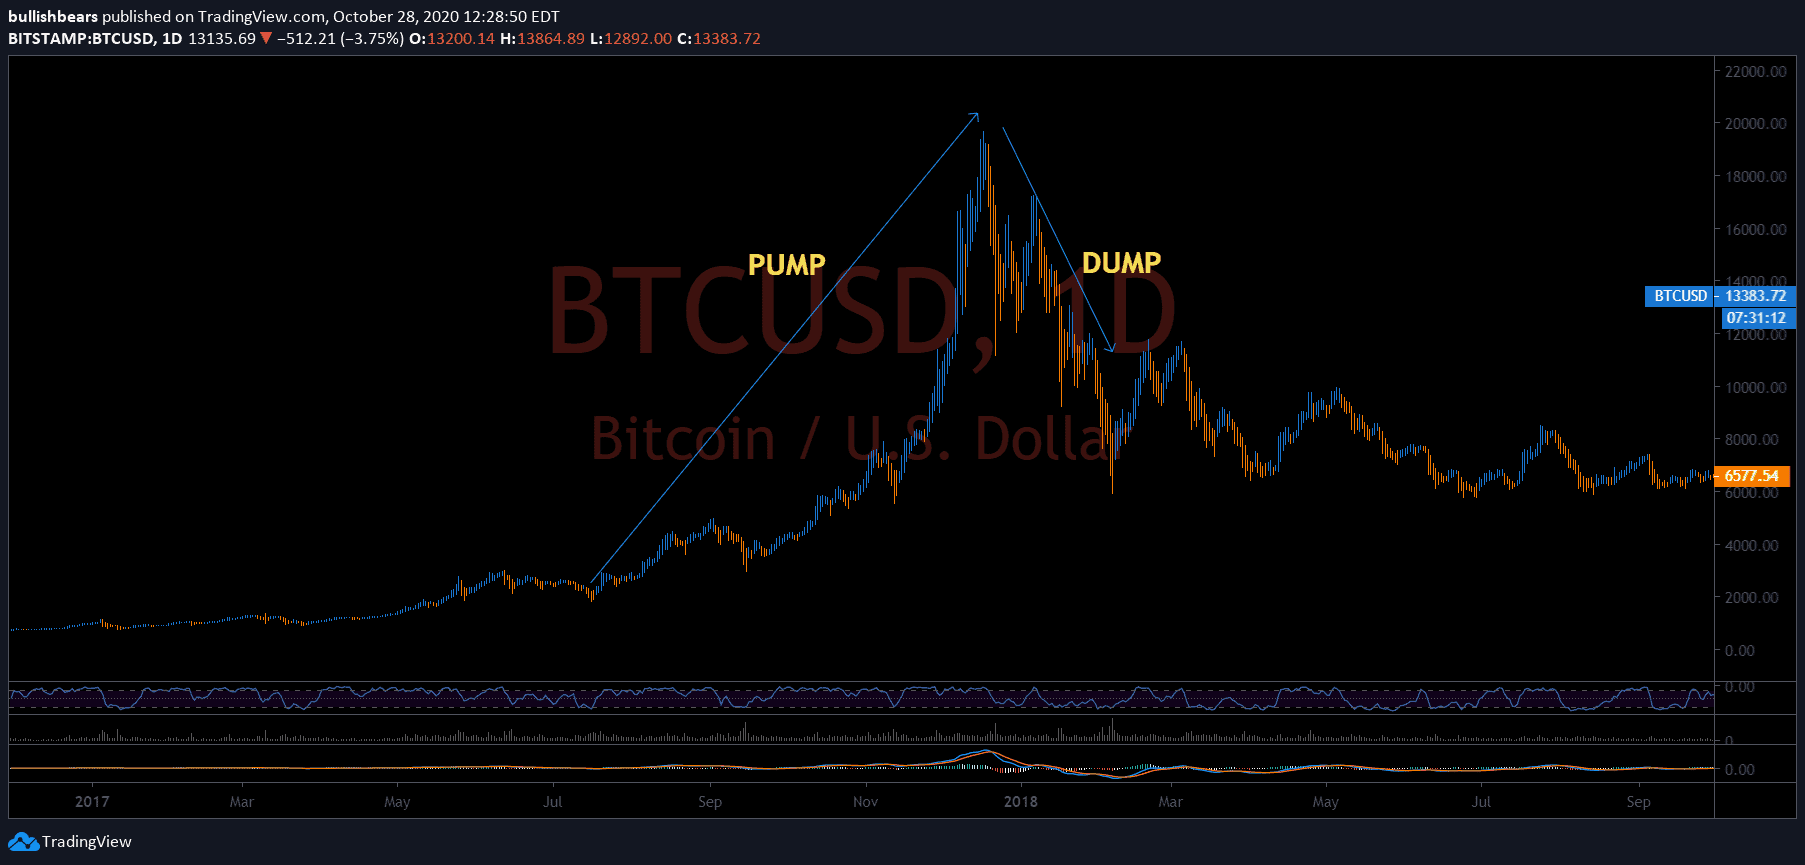 Pump and Dump Bitcoin